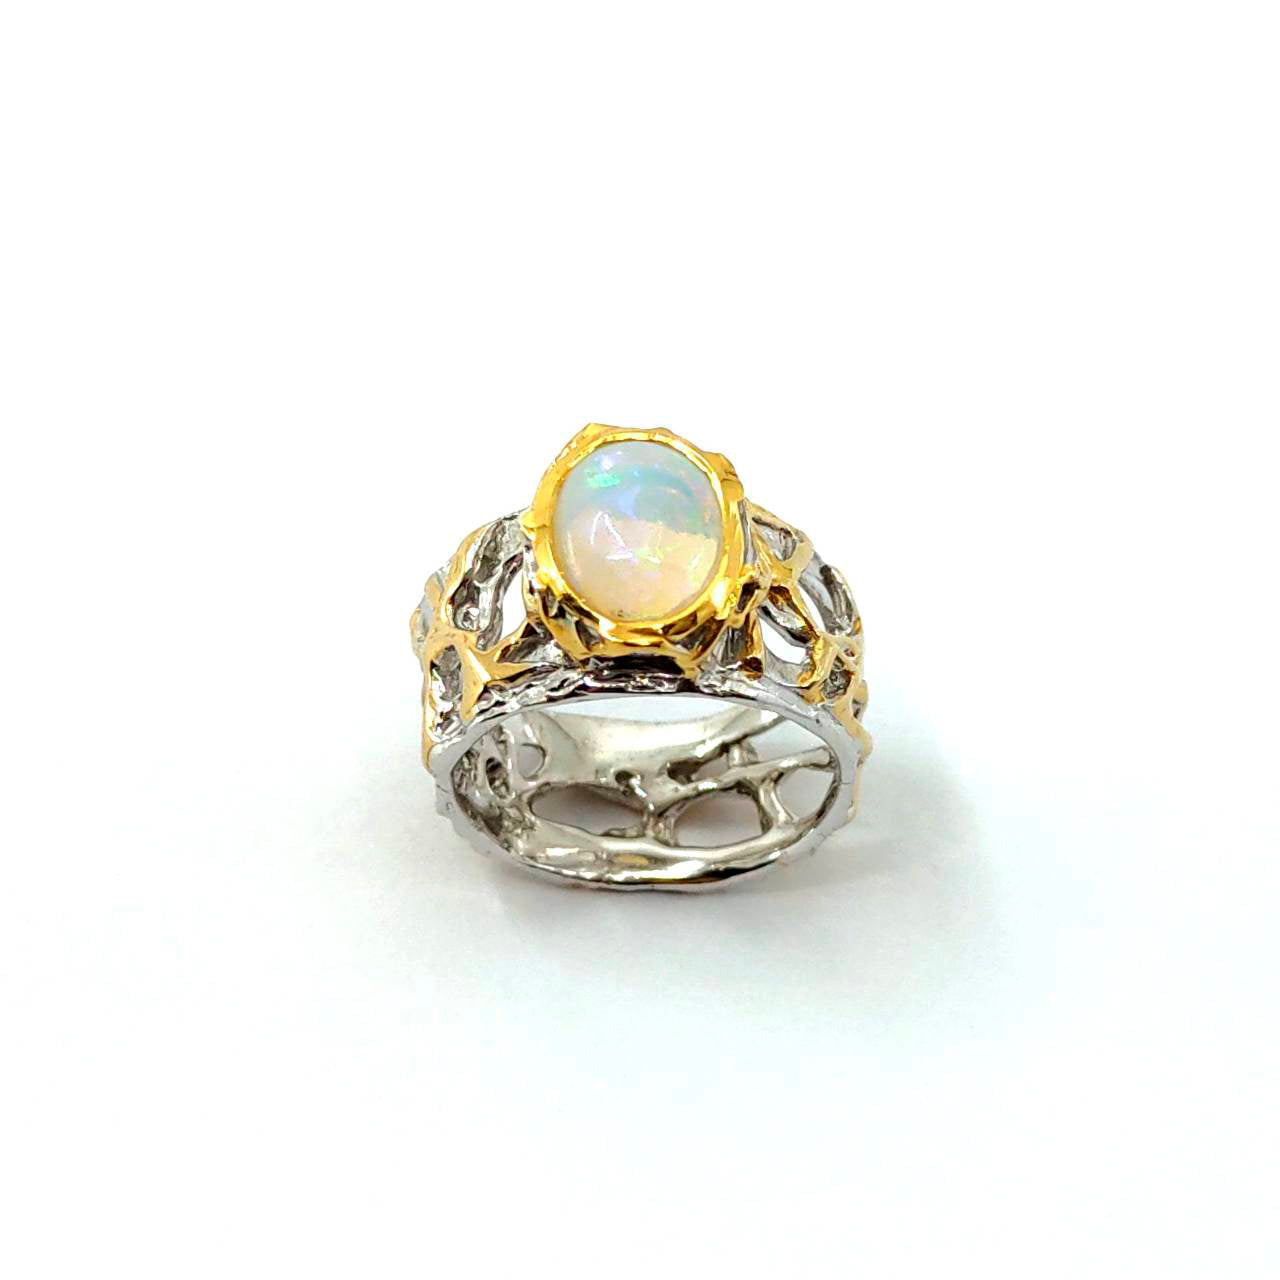 Opal Magic - 925 Sterling Silver Ring, Decorated with Ethiopian Opal, Plated with 3 Micron 22K Yellow Gold and White Rhodium